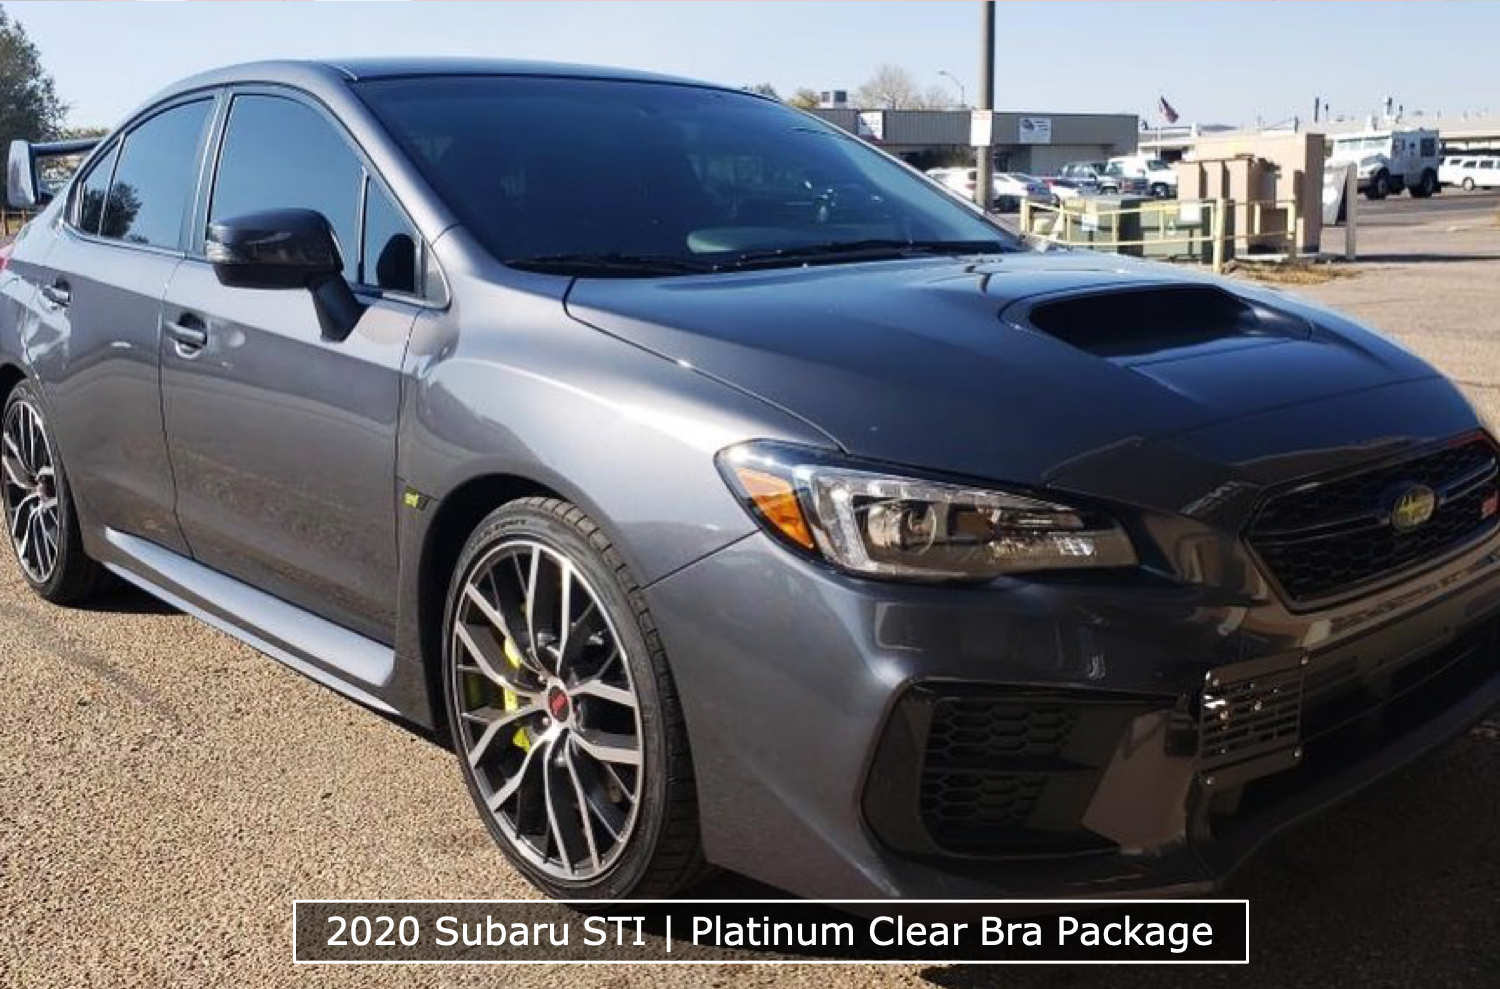 Subaru STI Platinum Clear Bra Package